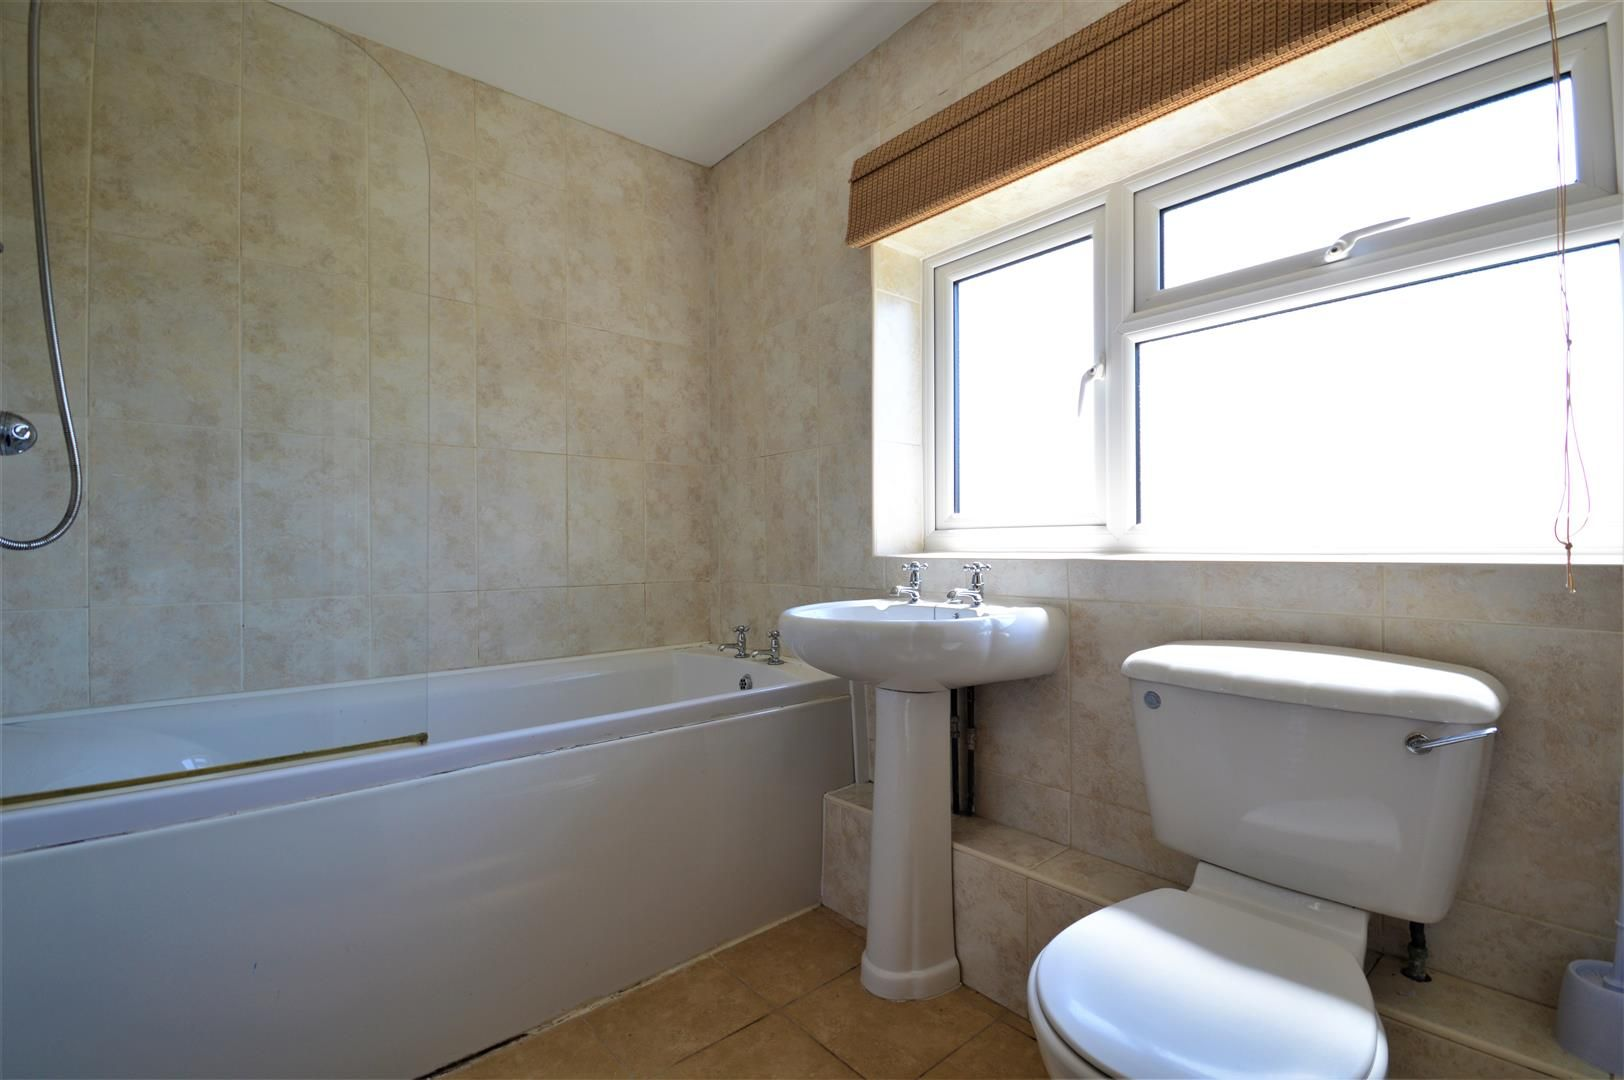 5 bed detached for sale in Sutton St. Nicholas  - Property Image 18